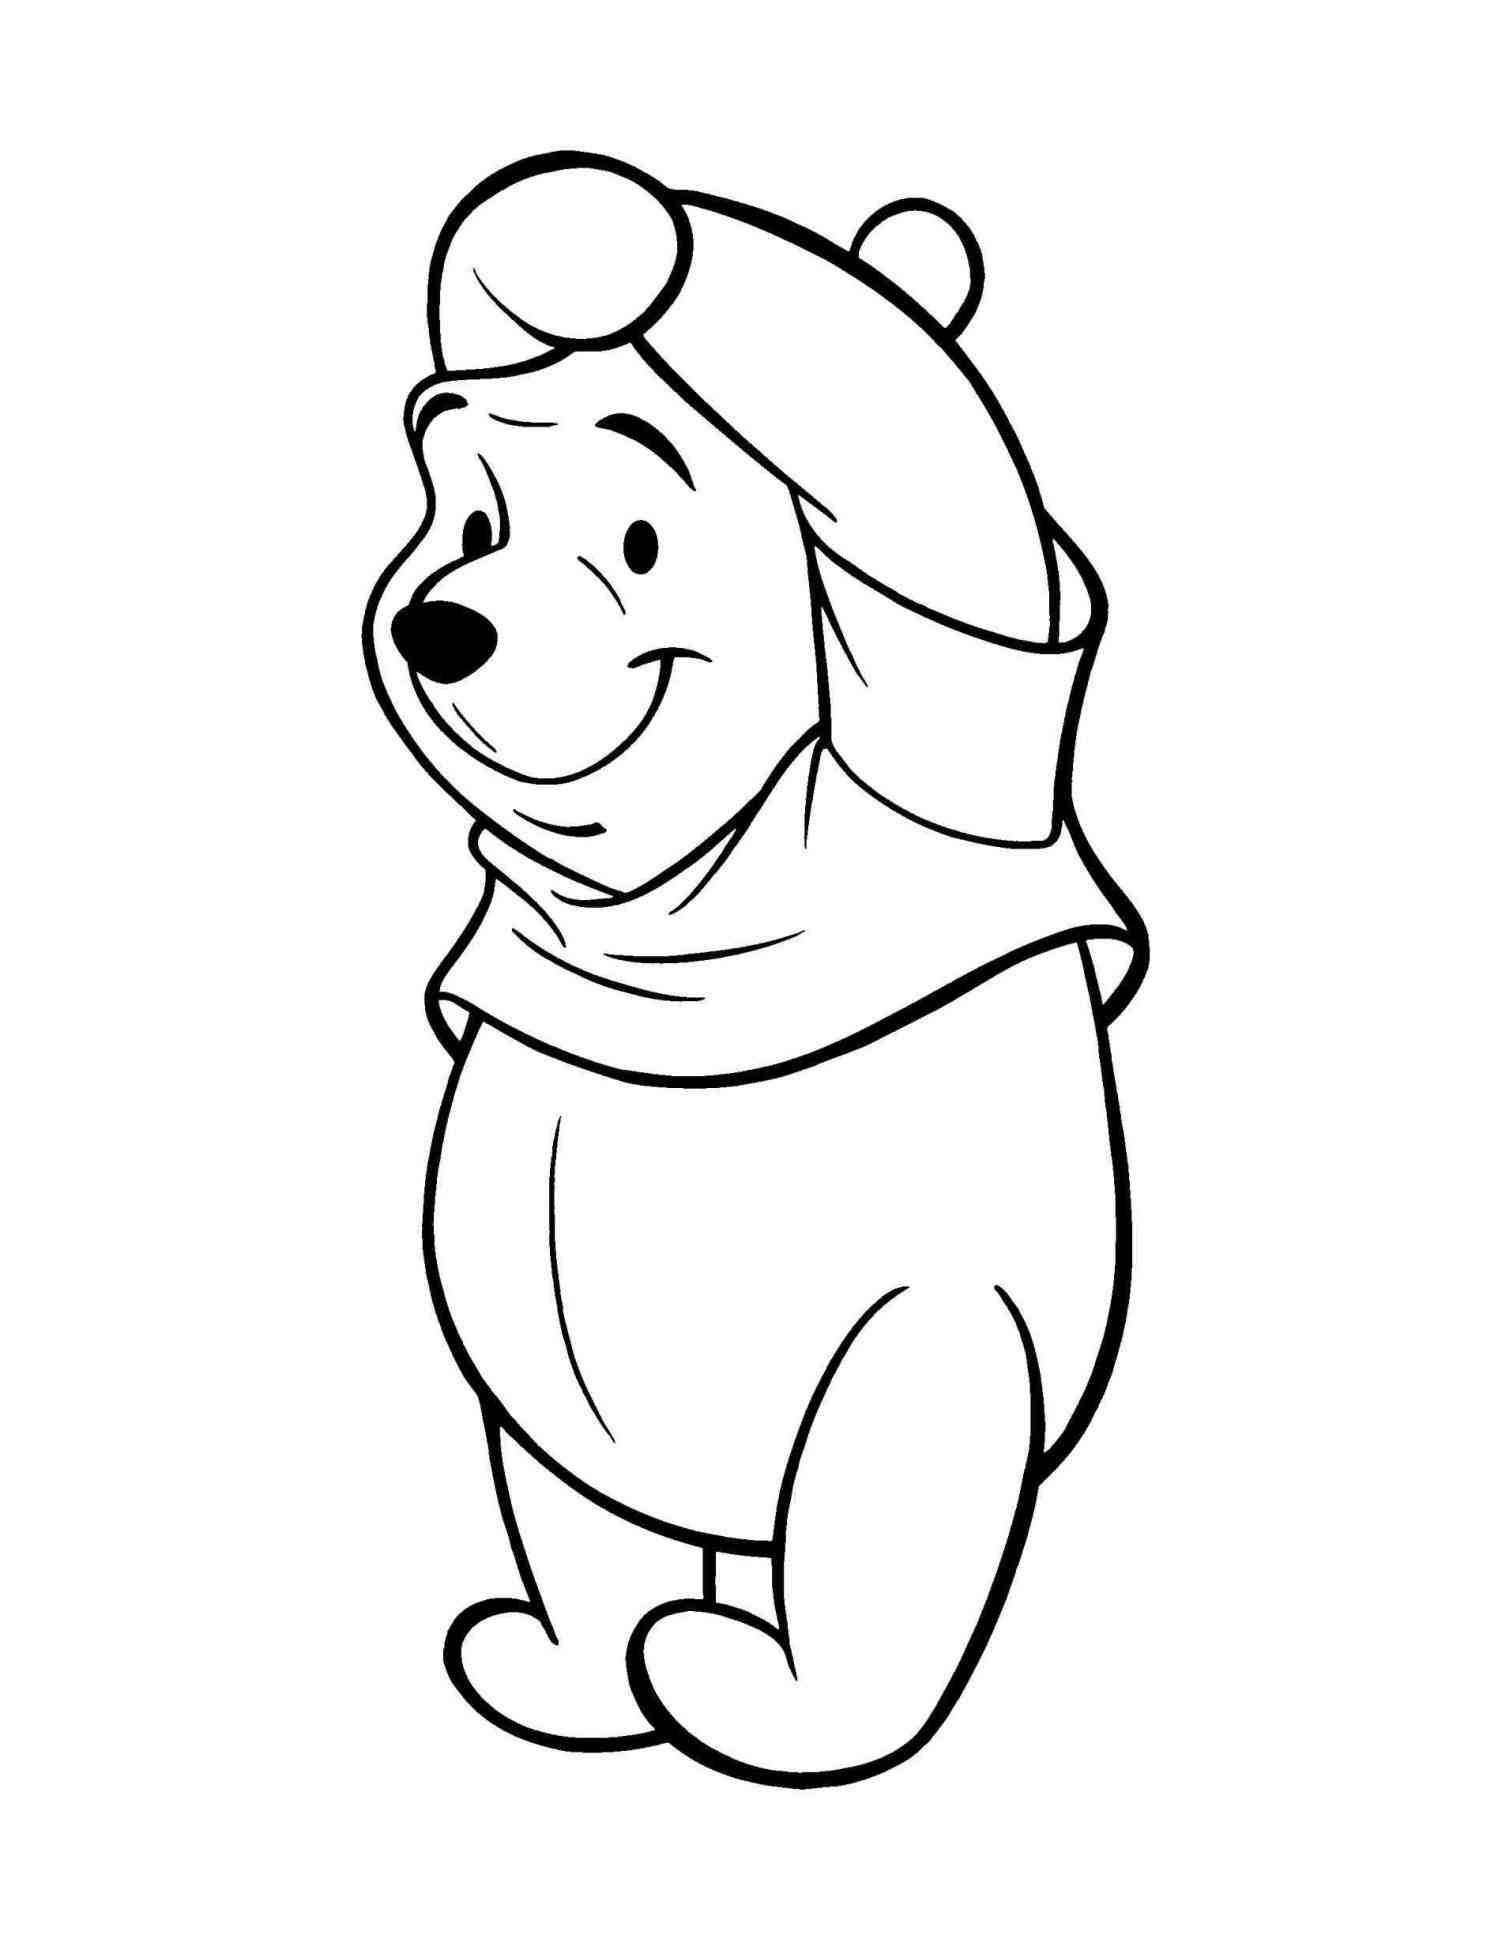 drawing of disney characters easy disney characters drawing free download on clipartmag characters disney drawing of